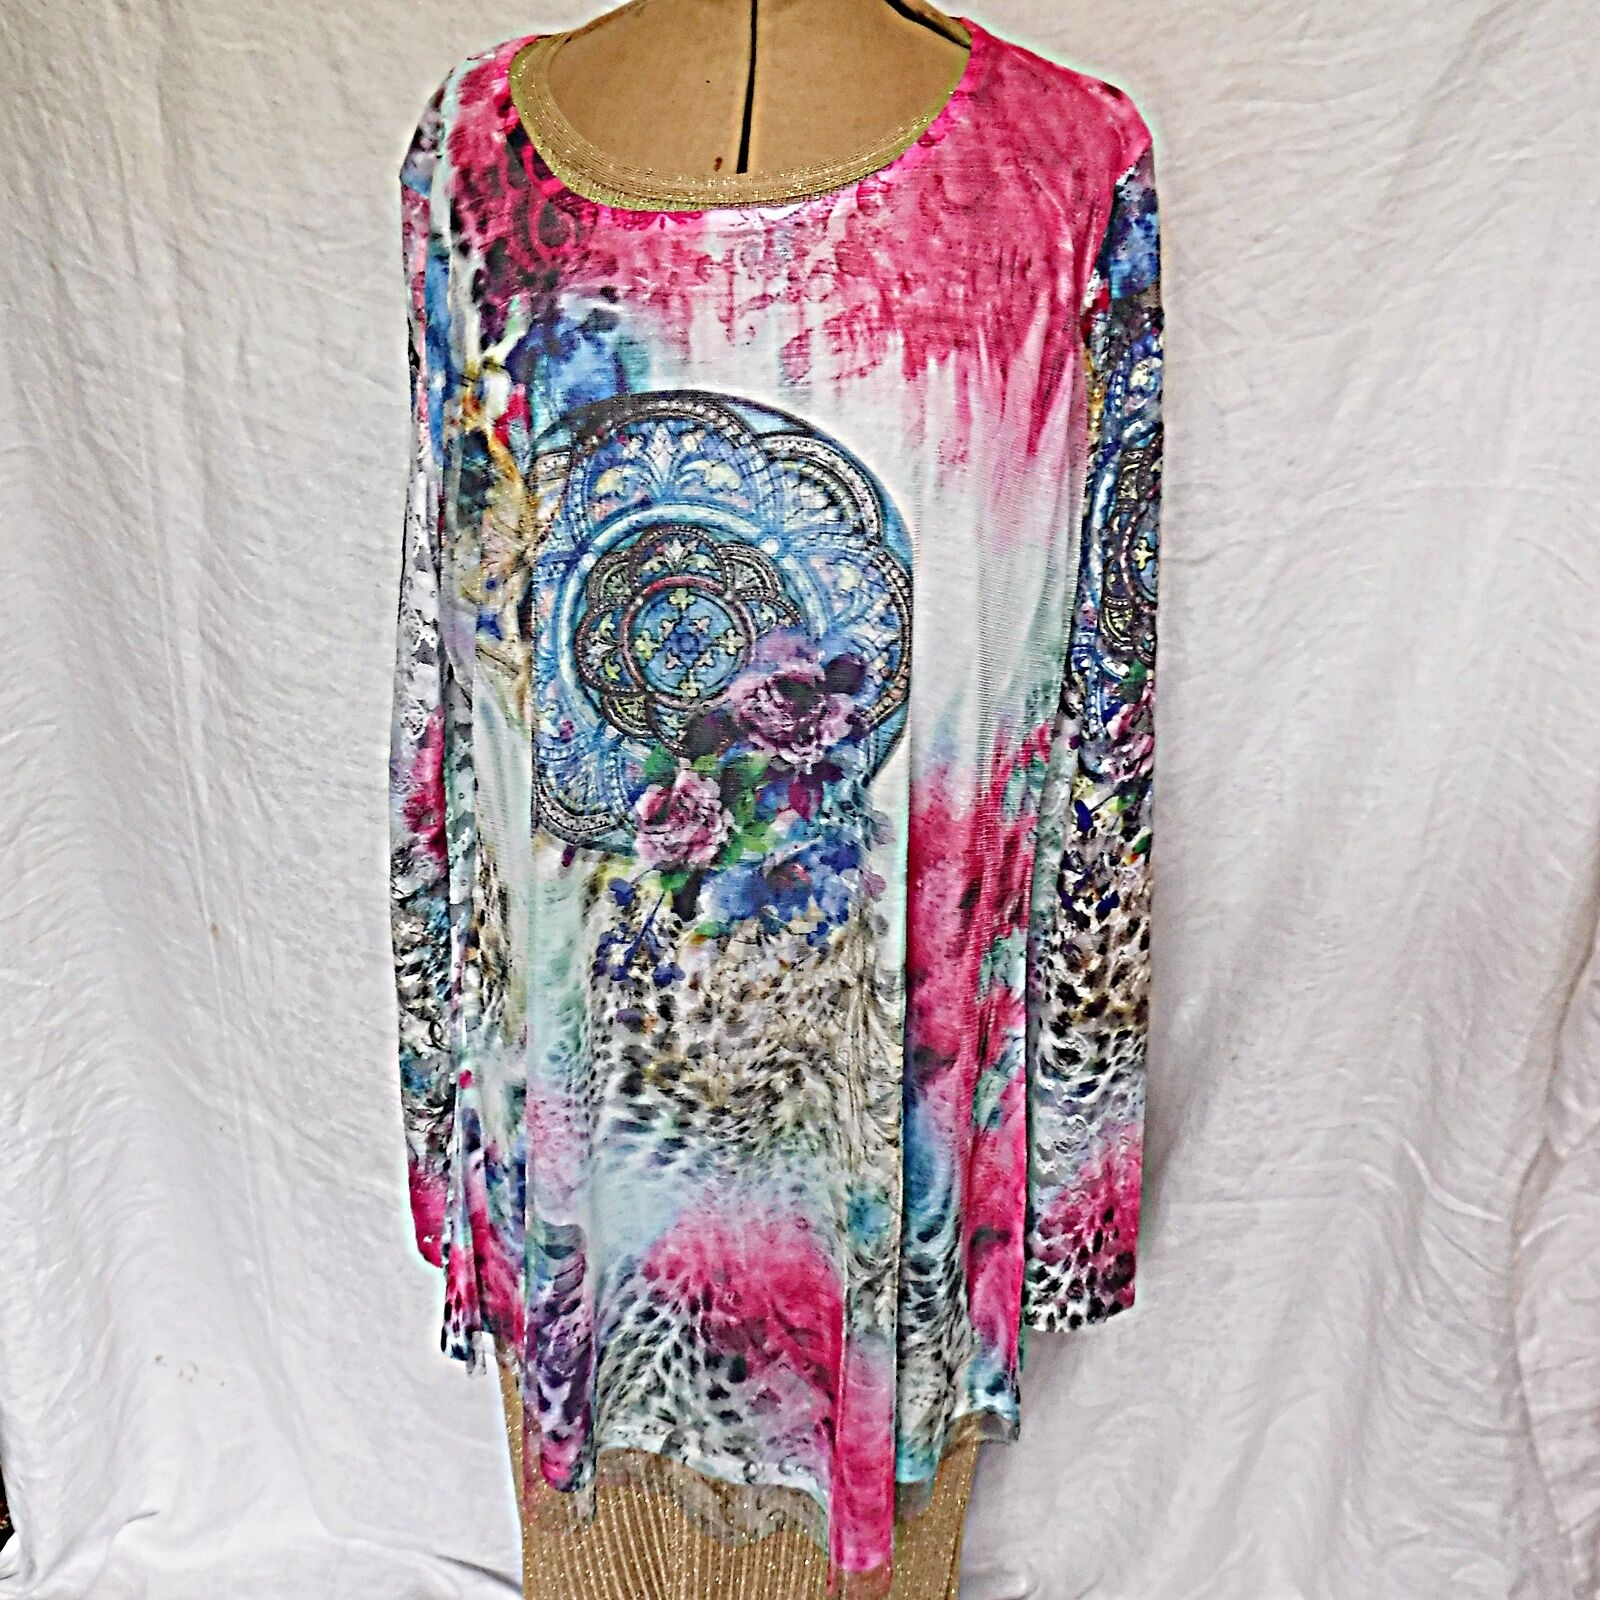 *INNOCENT FROM TRIBAL VOICE L/SLEEVE LACE NET PRINTED PINK BLUE MINI DRESS TOP L